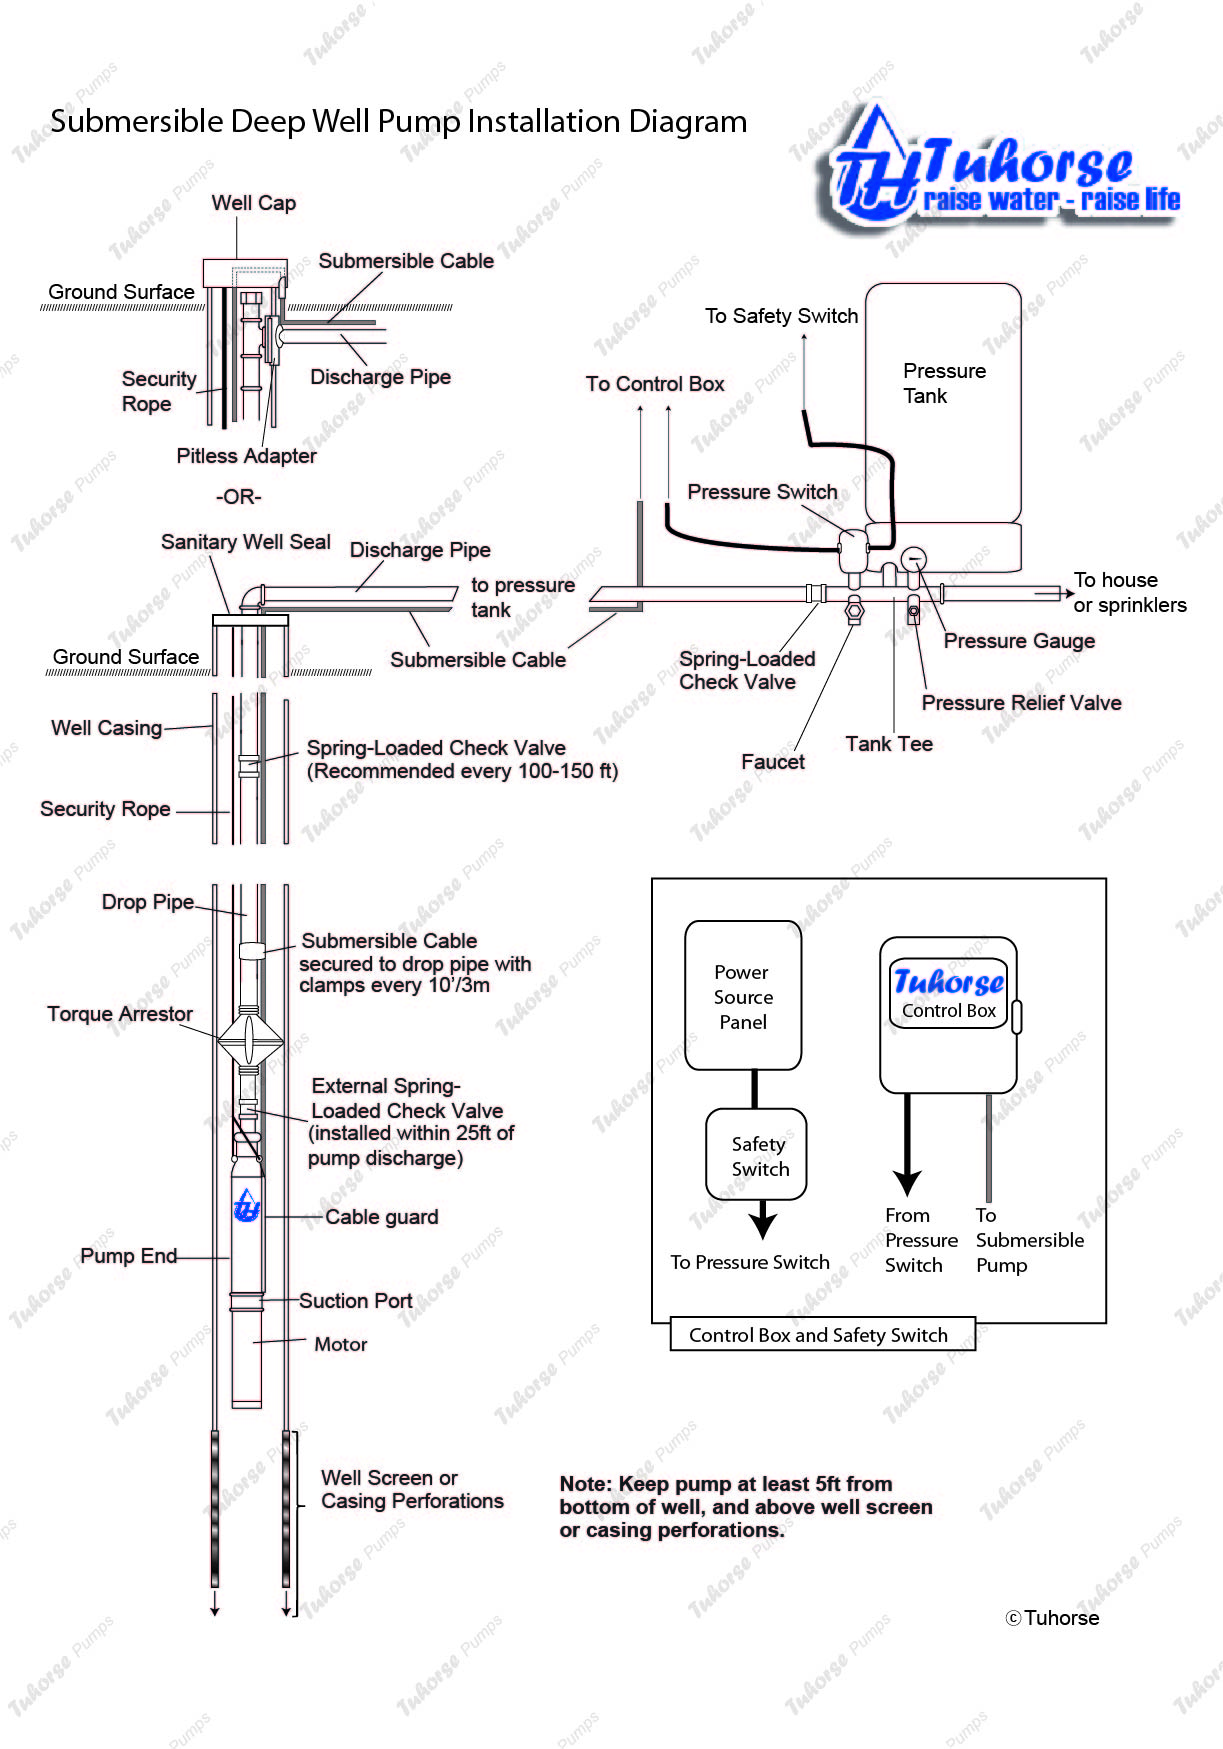 Wiring Diagram For A Well - Wiring Diagram Ops on